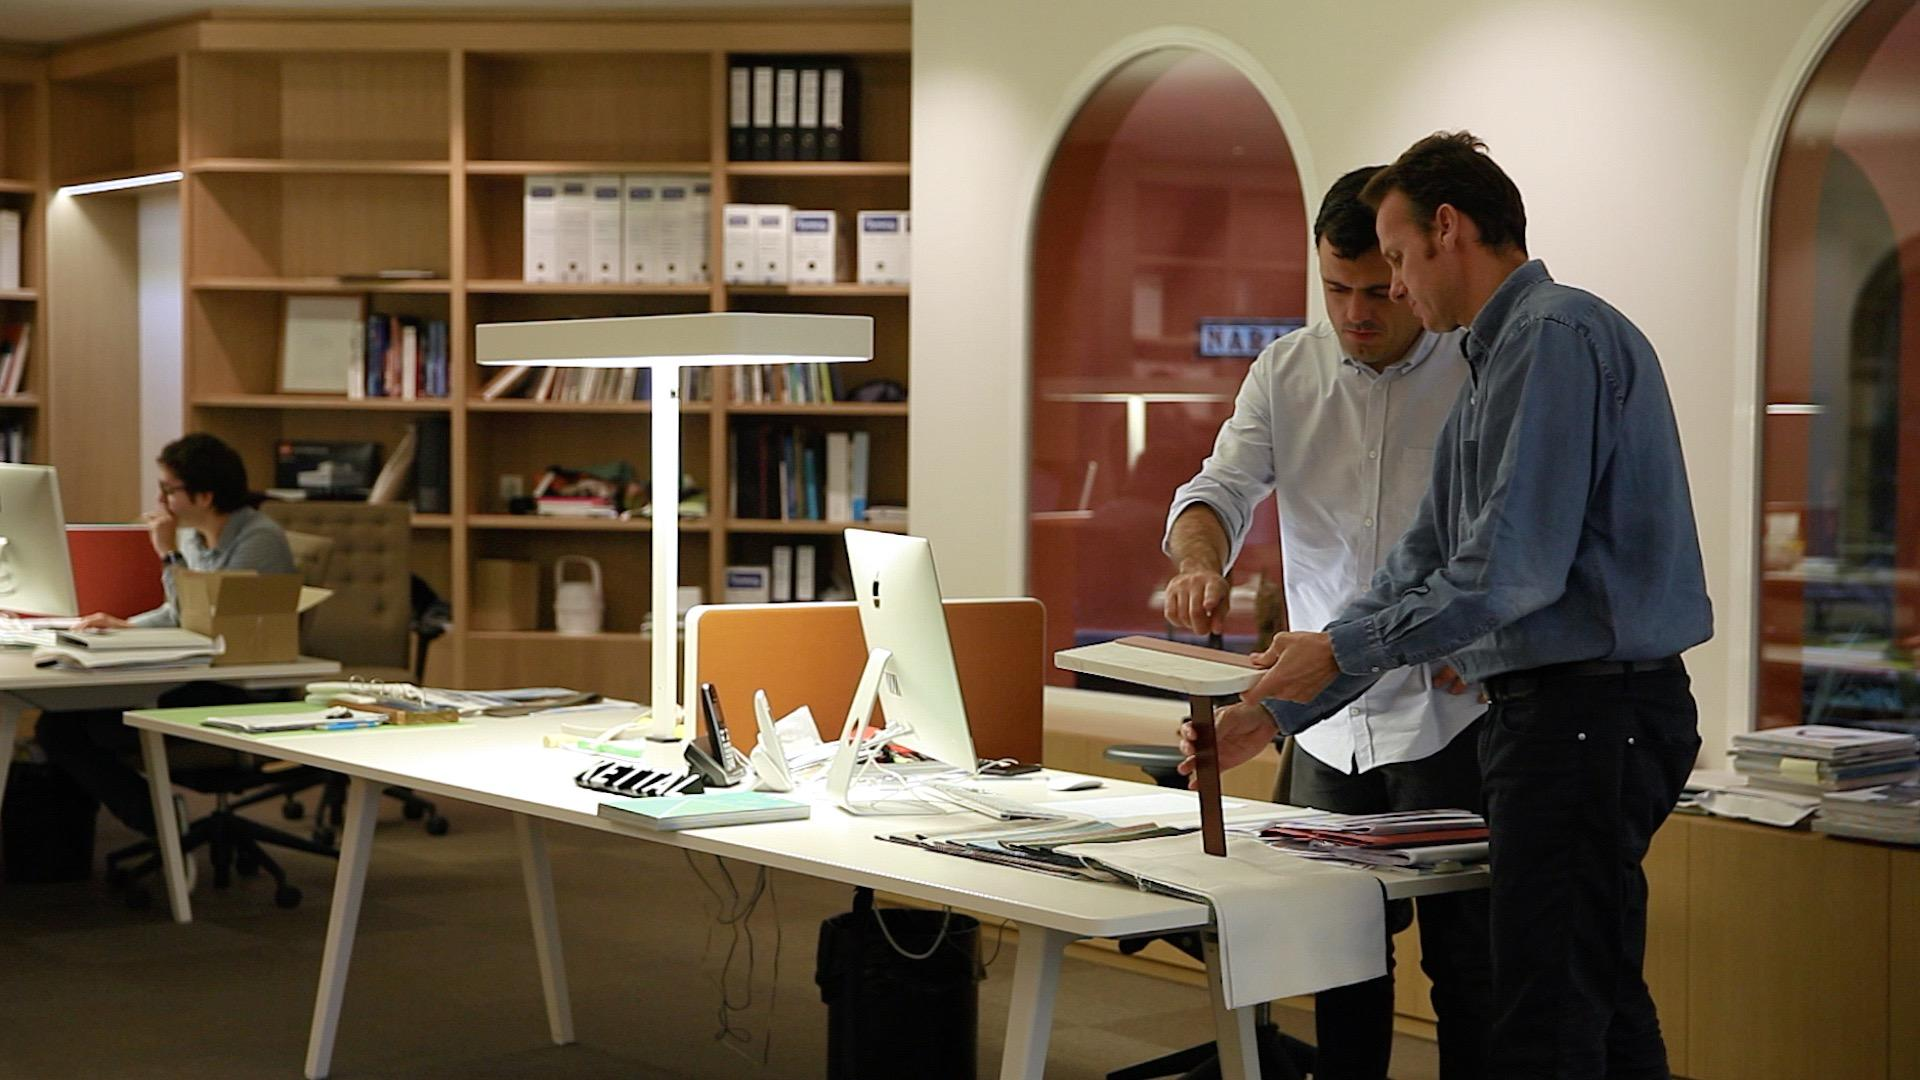 Monocle x Pictet The Entrepreneurs Series Barcelona & The perfect workplace - Film | Monocle